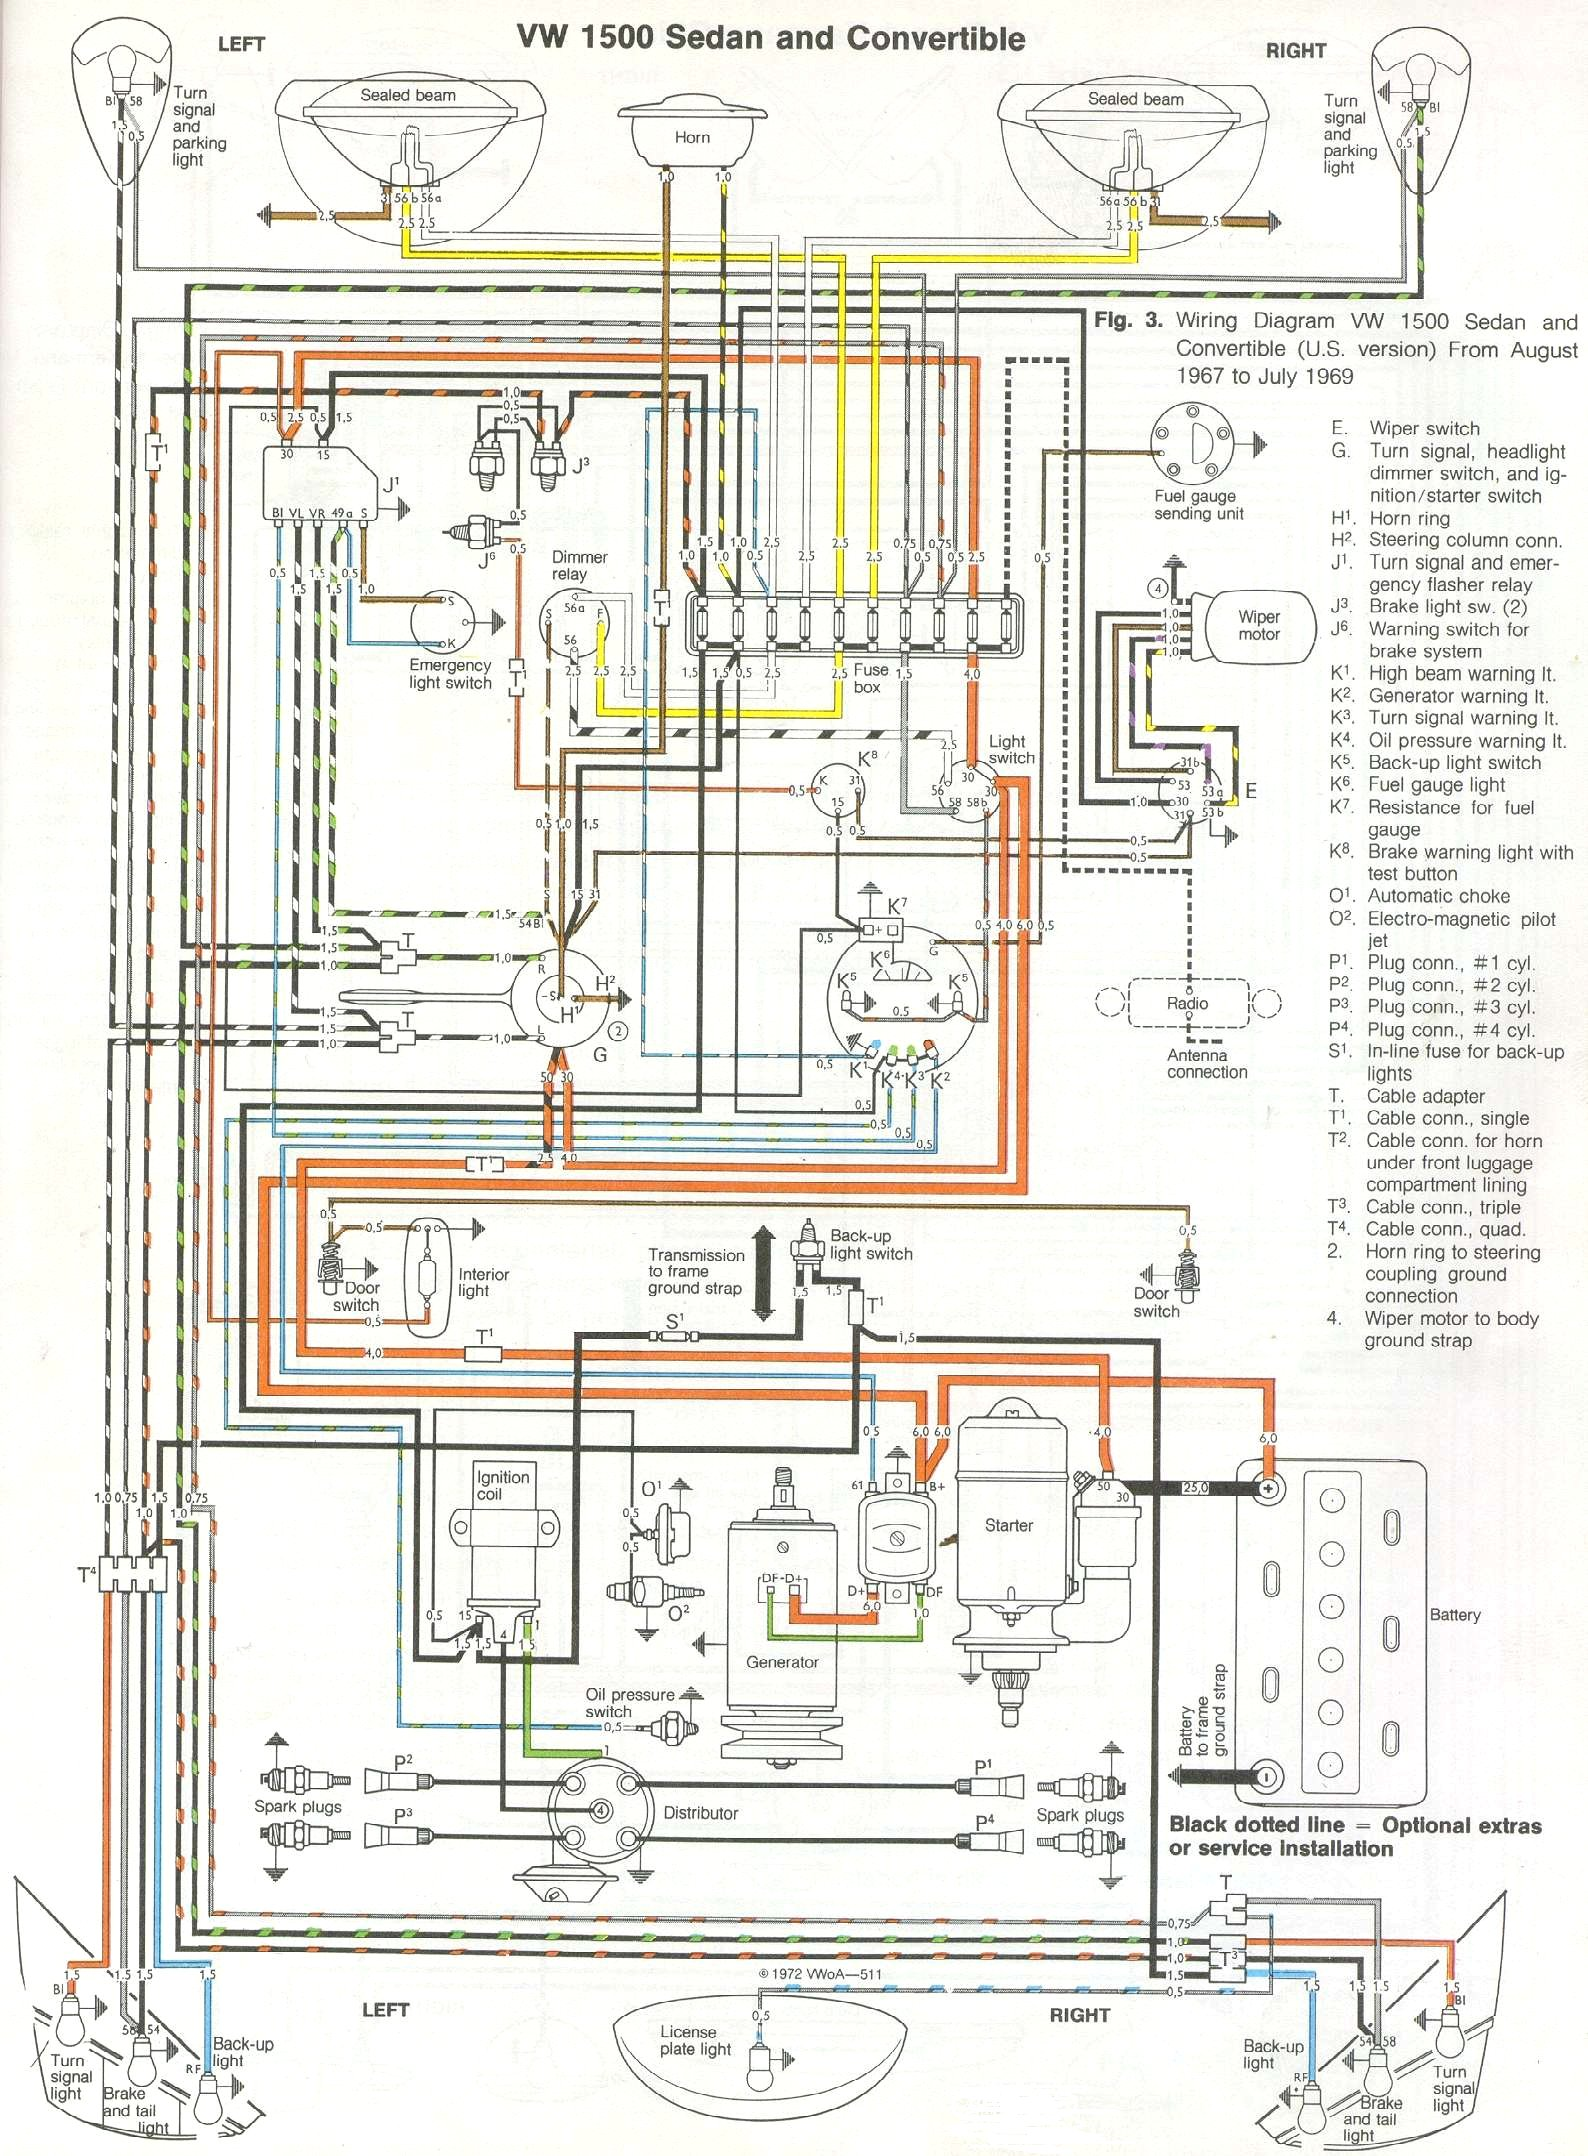 Vw Beetle Fuse Diagram List Of Schematic Circuit 02 Golf 1969 71 Wiring Thegoldenbug Com Rh Volkswagen 2014